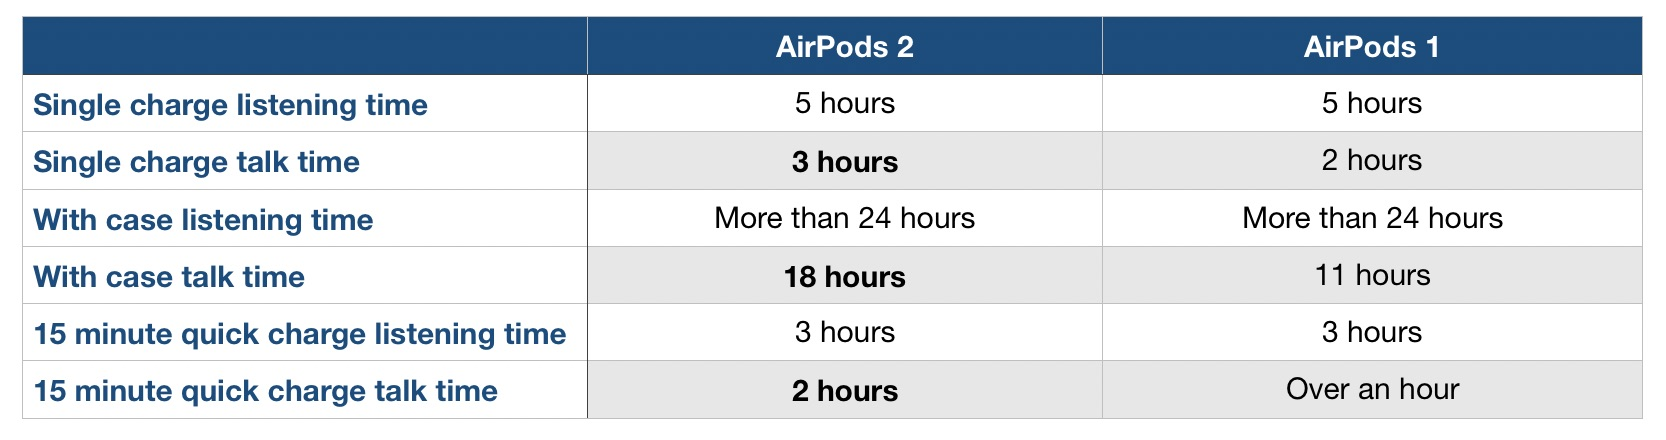 AirPods 2 battery life